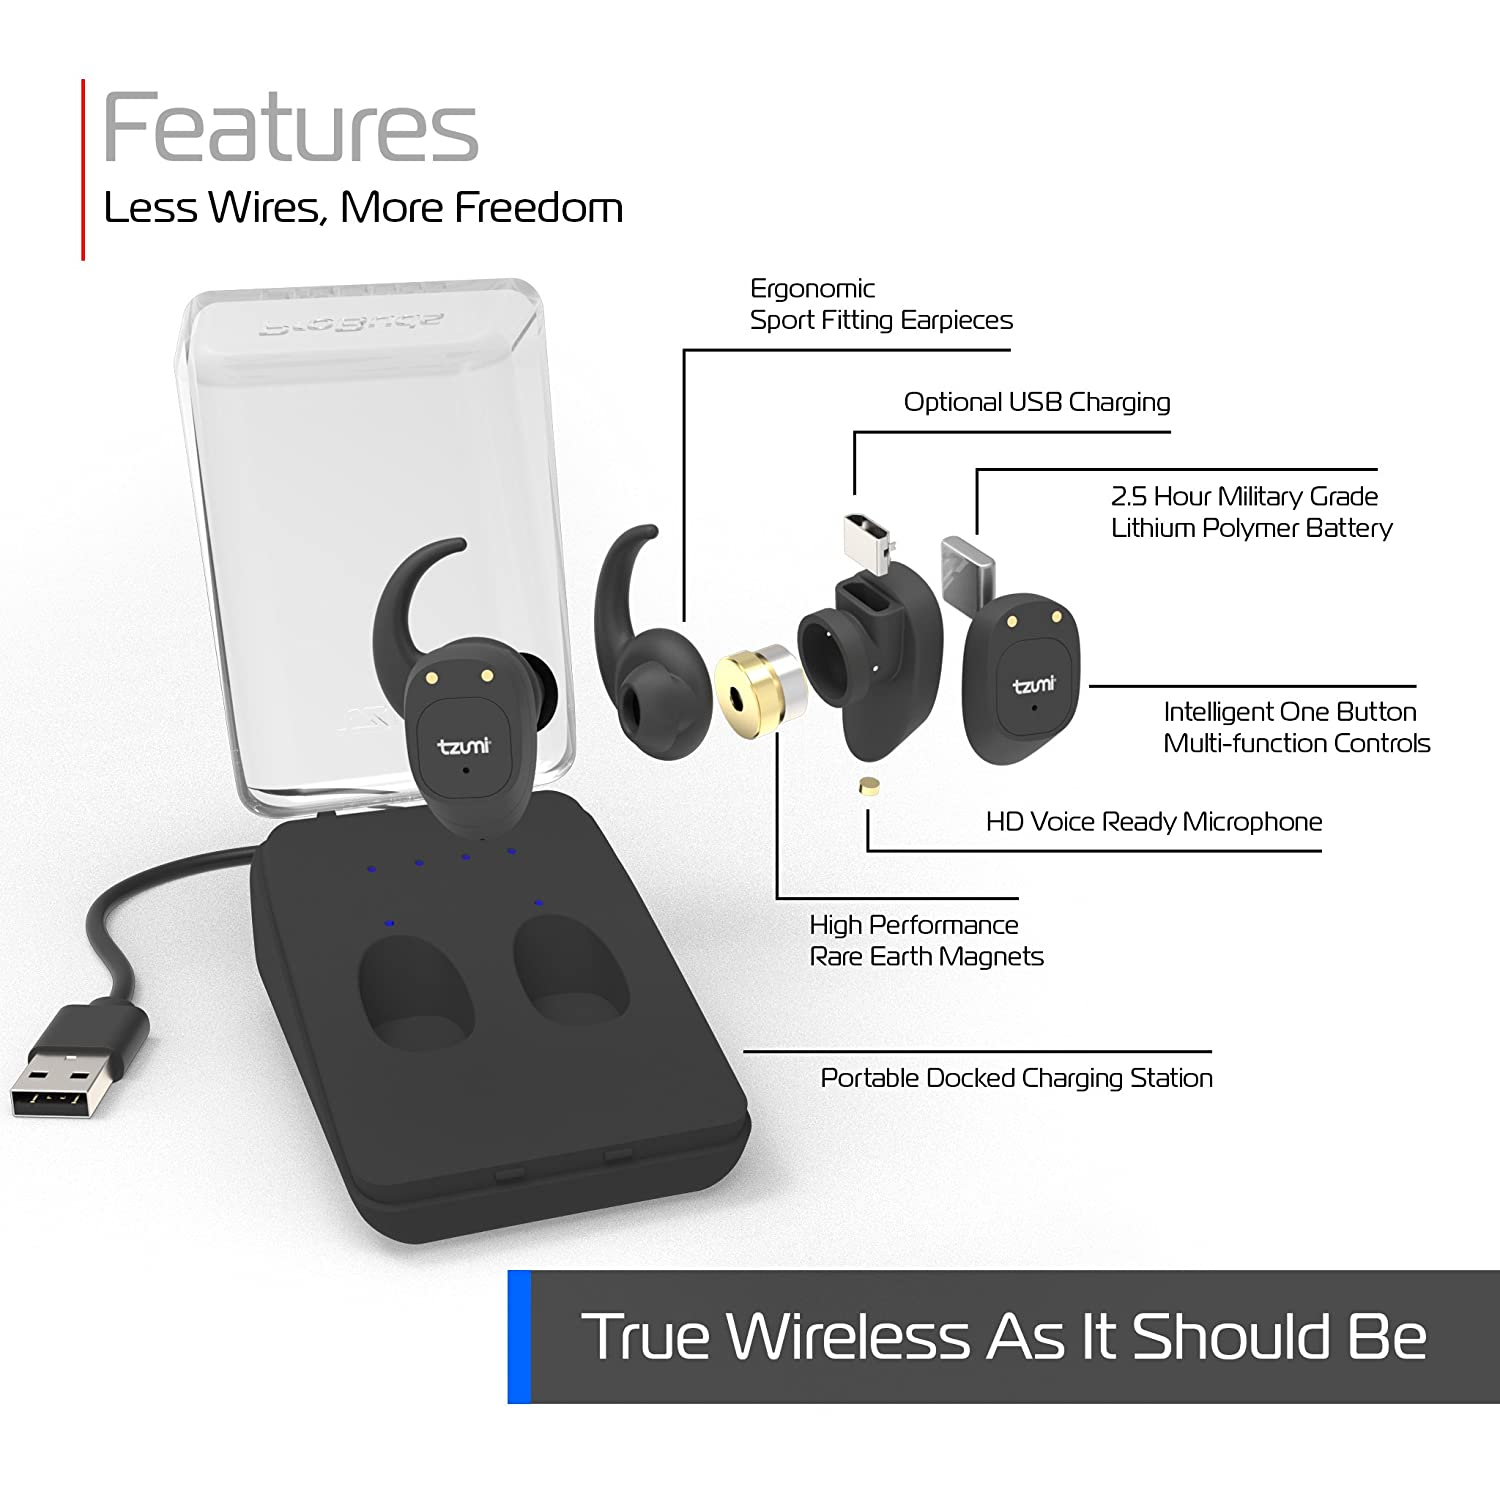 b8d2680afa8 Amazon.com: Tzumi ProBuds True Wireless Earbuds - Wireless Stereo Earbuds  With Built-In Microphone and Charging Case – Bluetooth 4.2 Compatible with  all ...